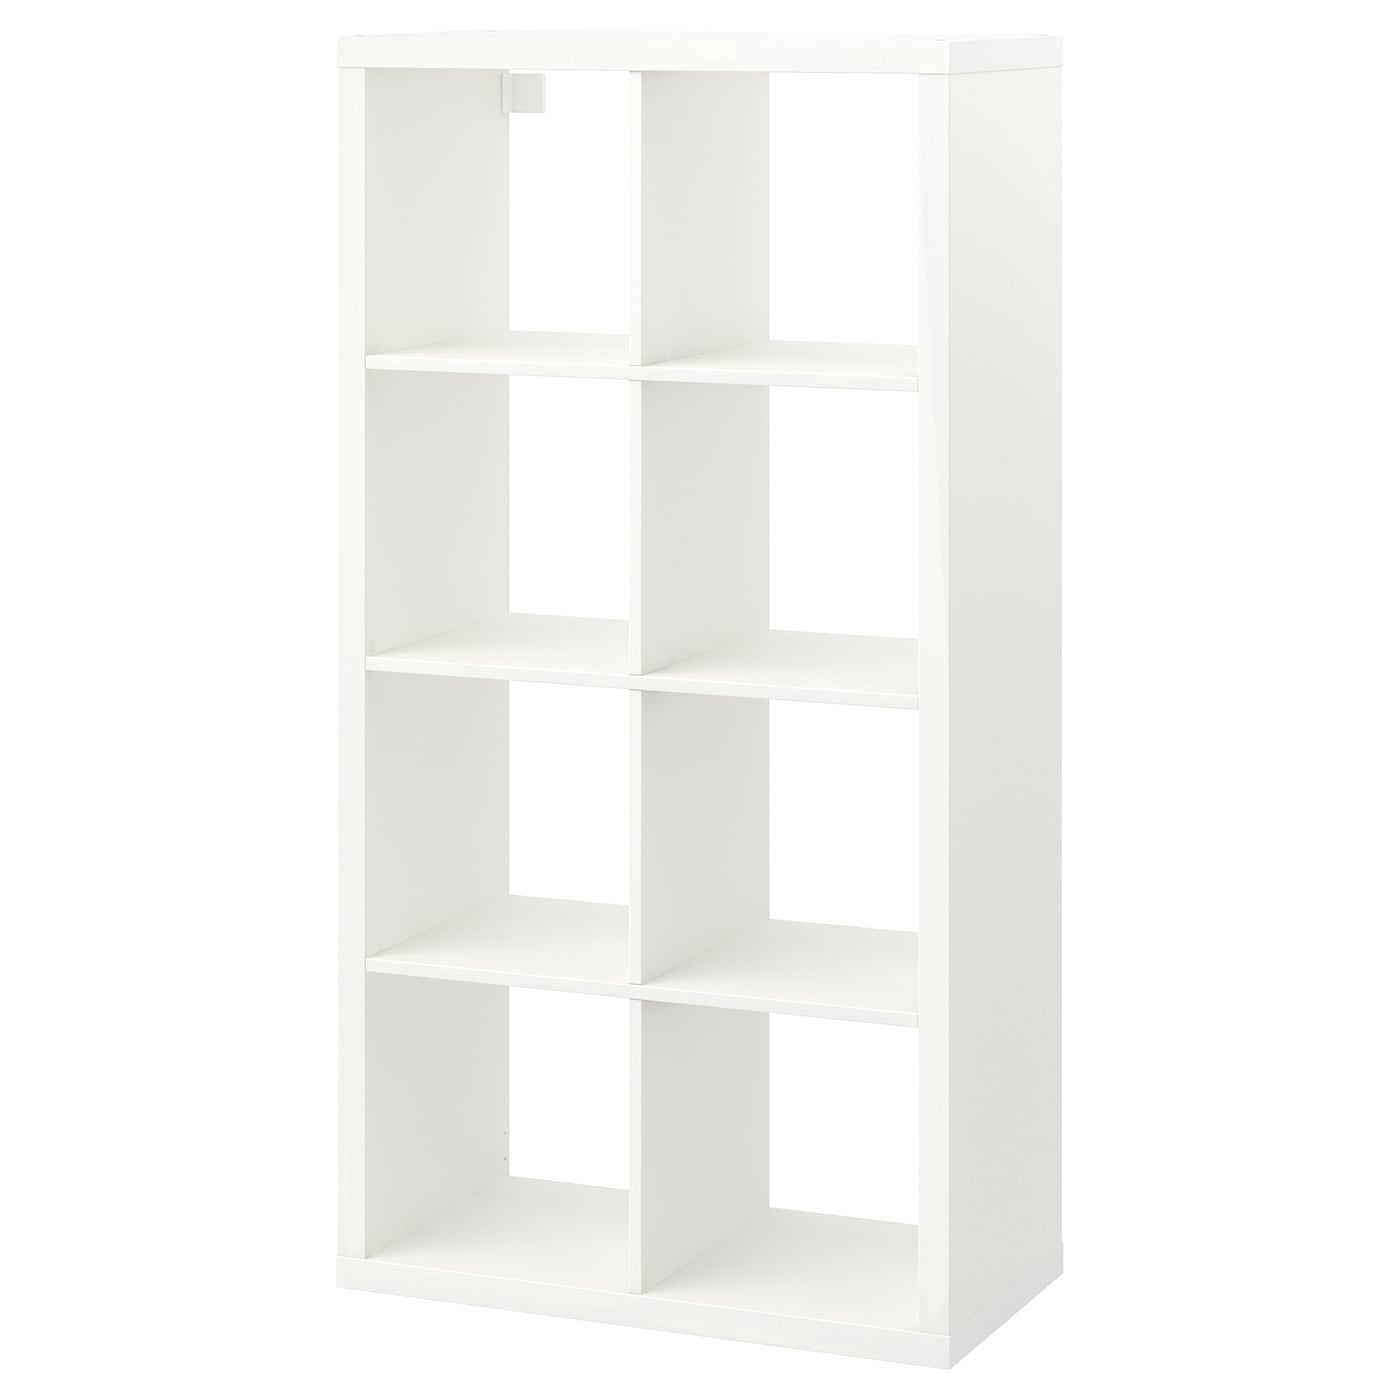 Home 2 Tiers Diy Shelving Cd Book Storage Box Unit Display Bookcase Shelf Home Office